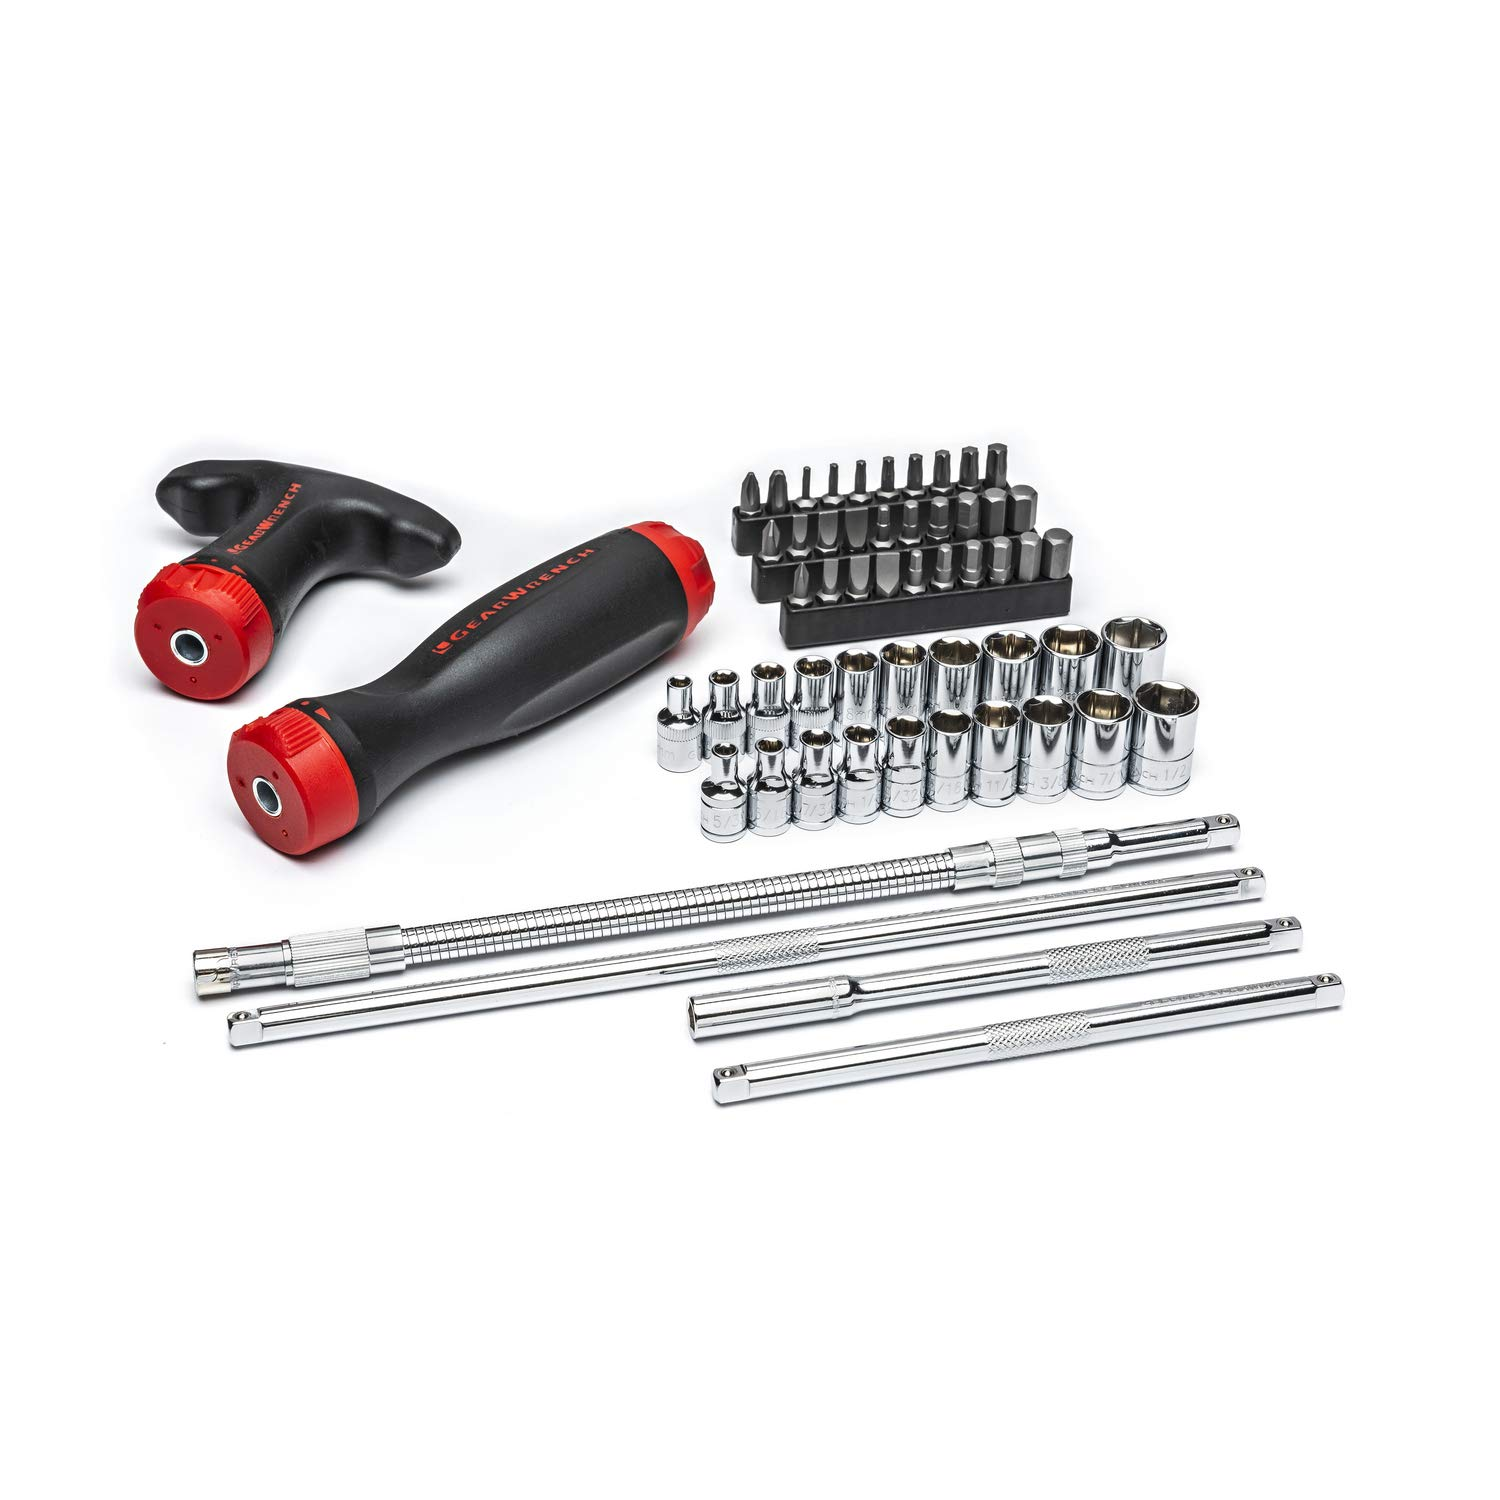 GEARWRENCH 56 Pc. Ratcheting GearDriver Screwdriver Set - 82779 by GearWrench